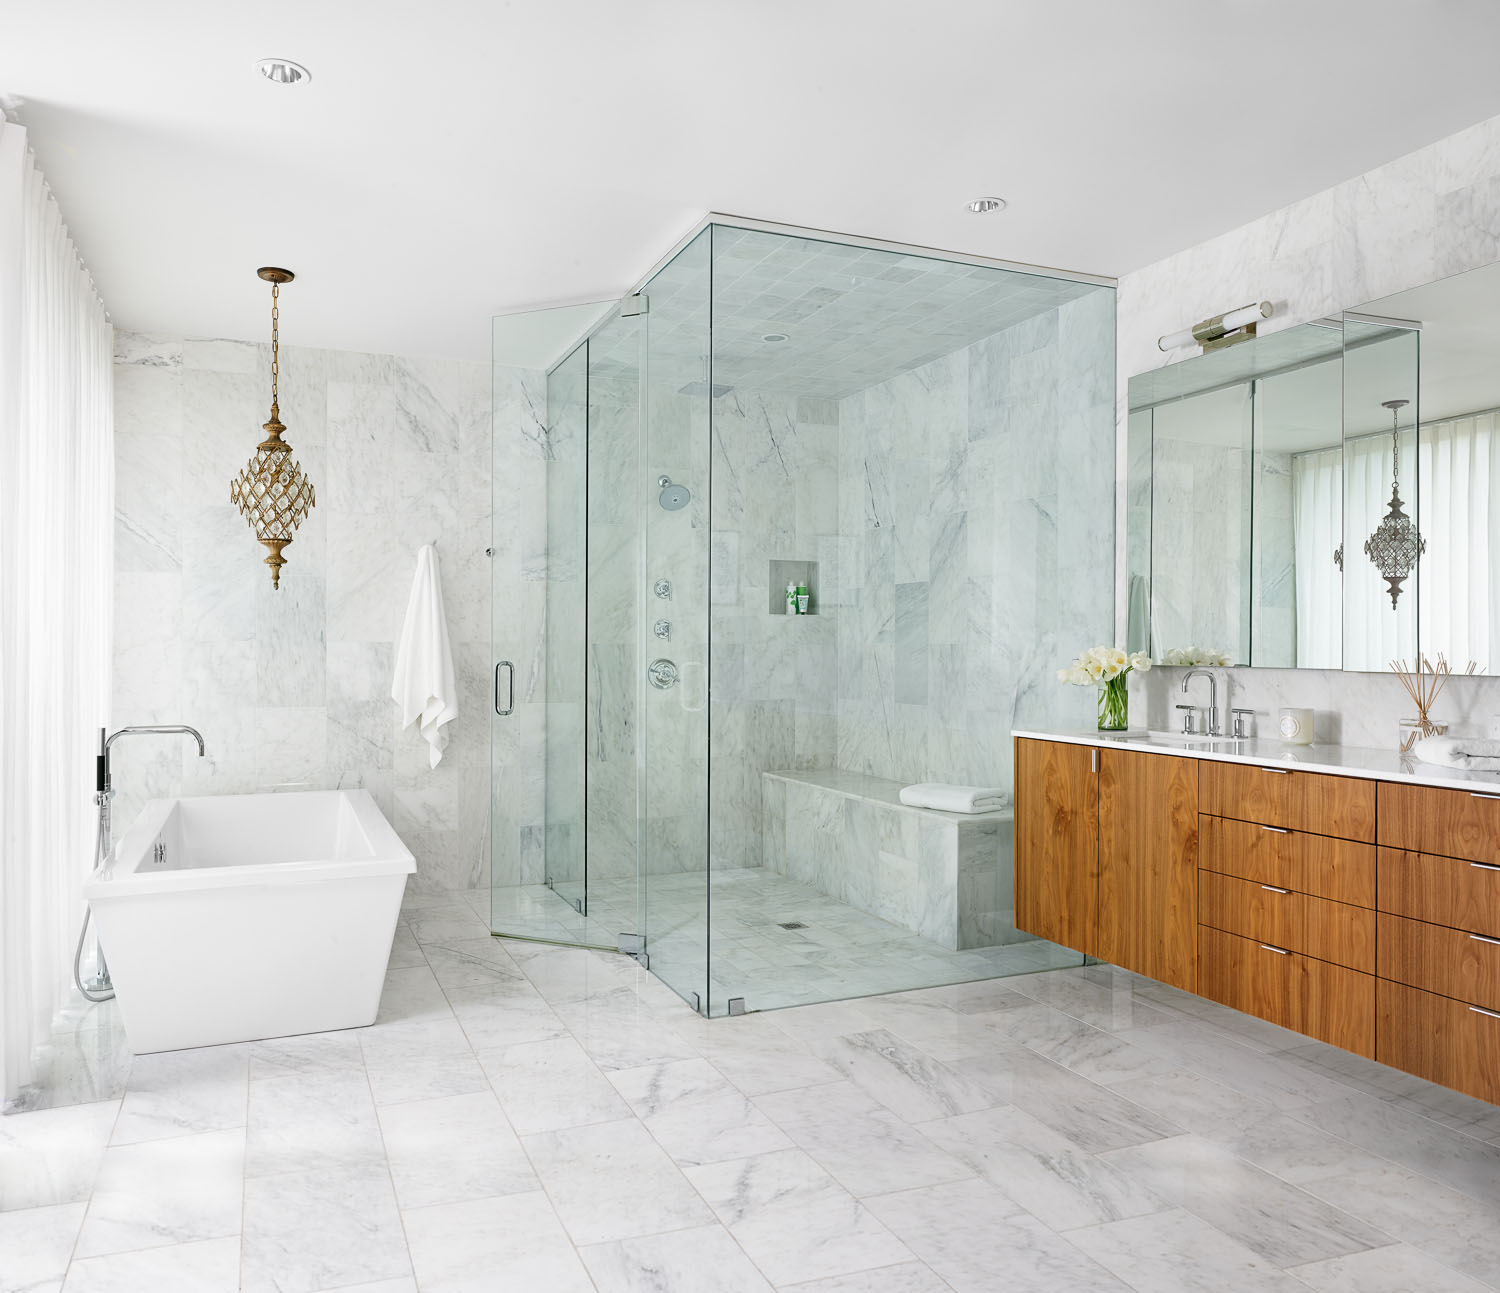 Marble floors and walls provide a spa liking feeling within the master bath.